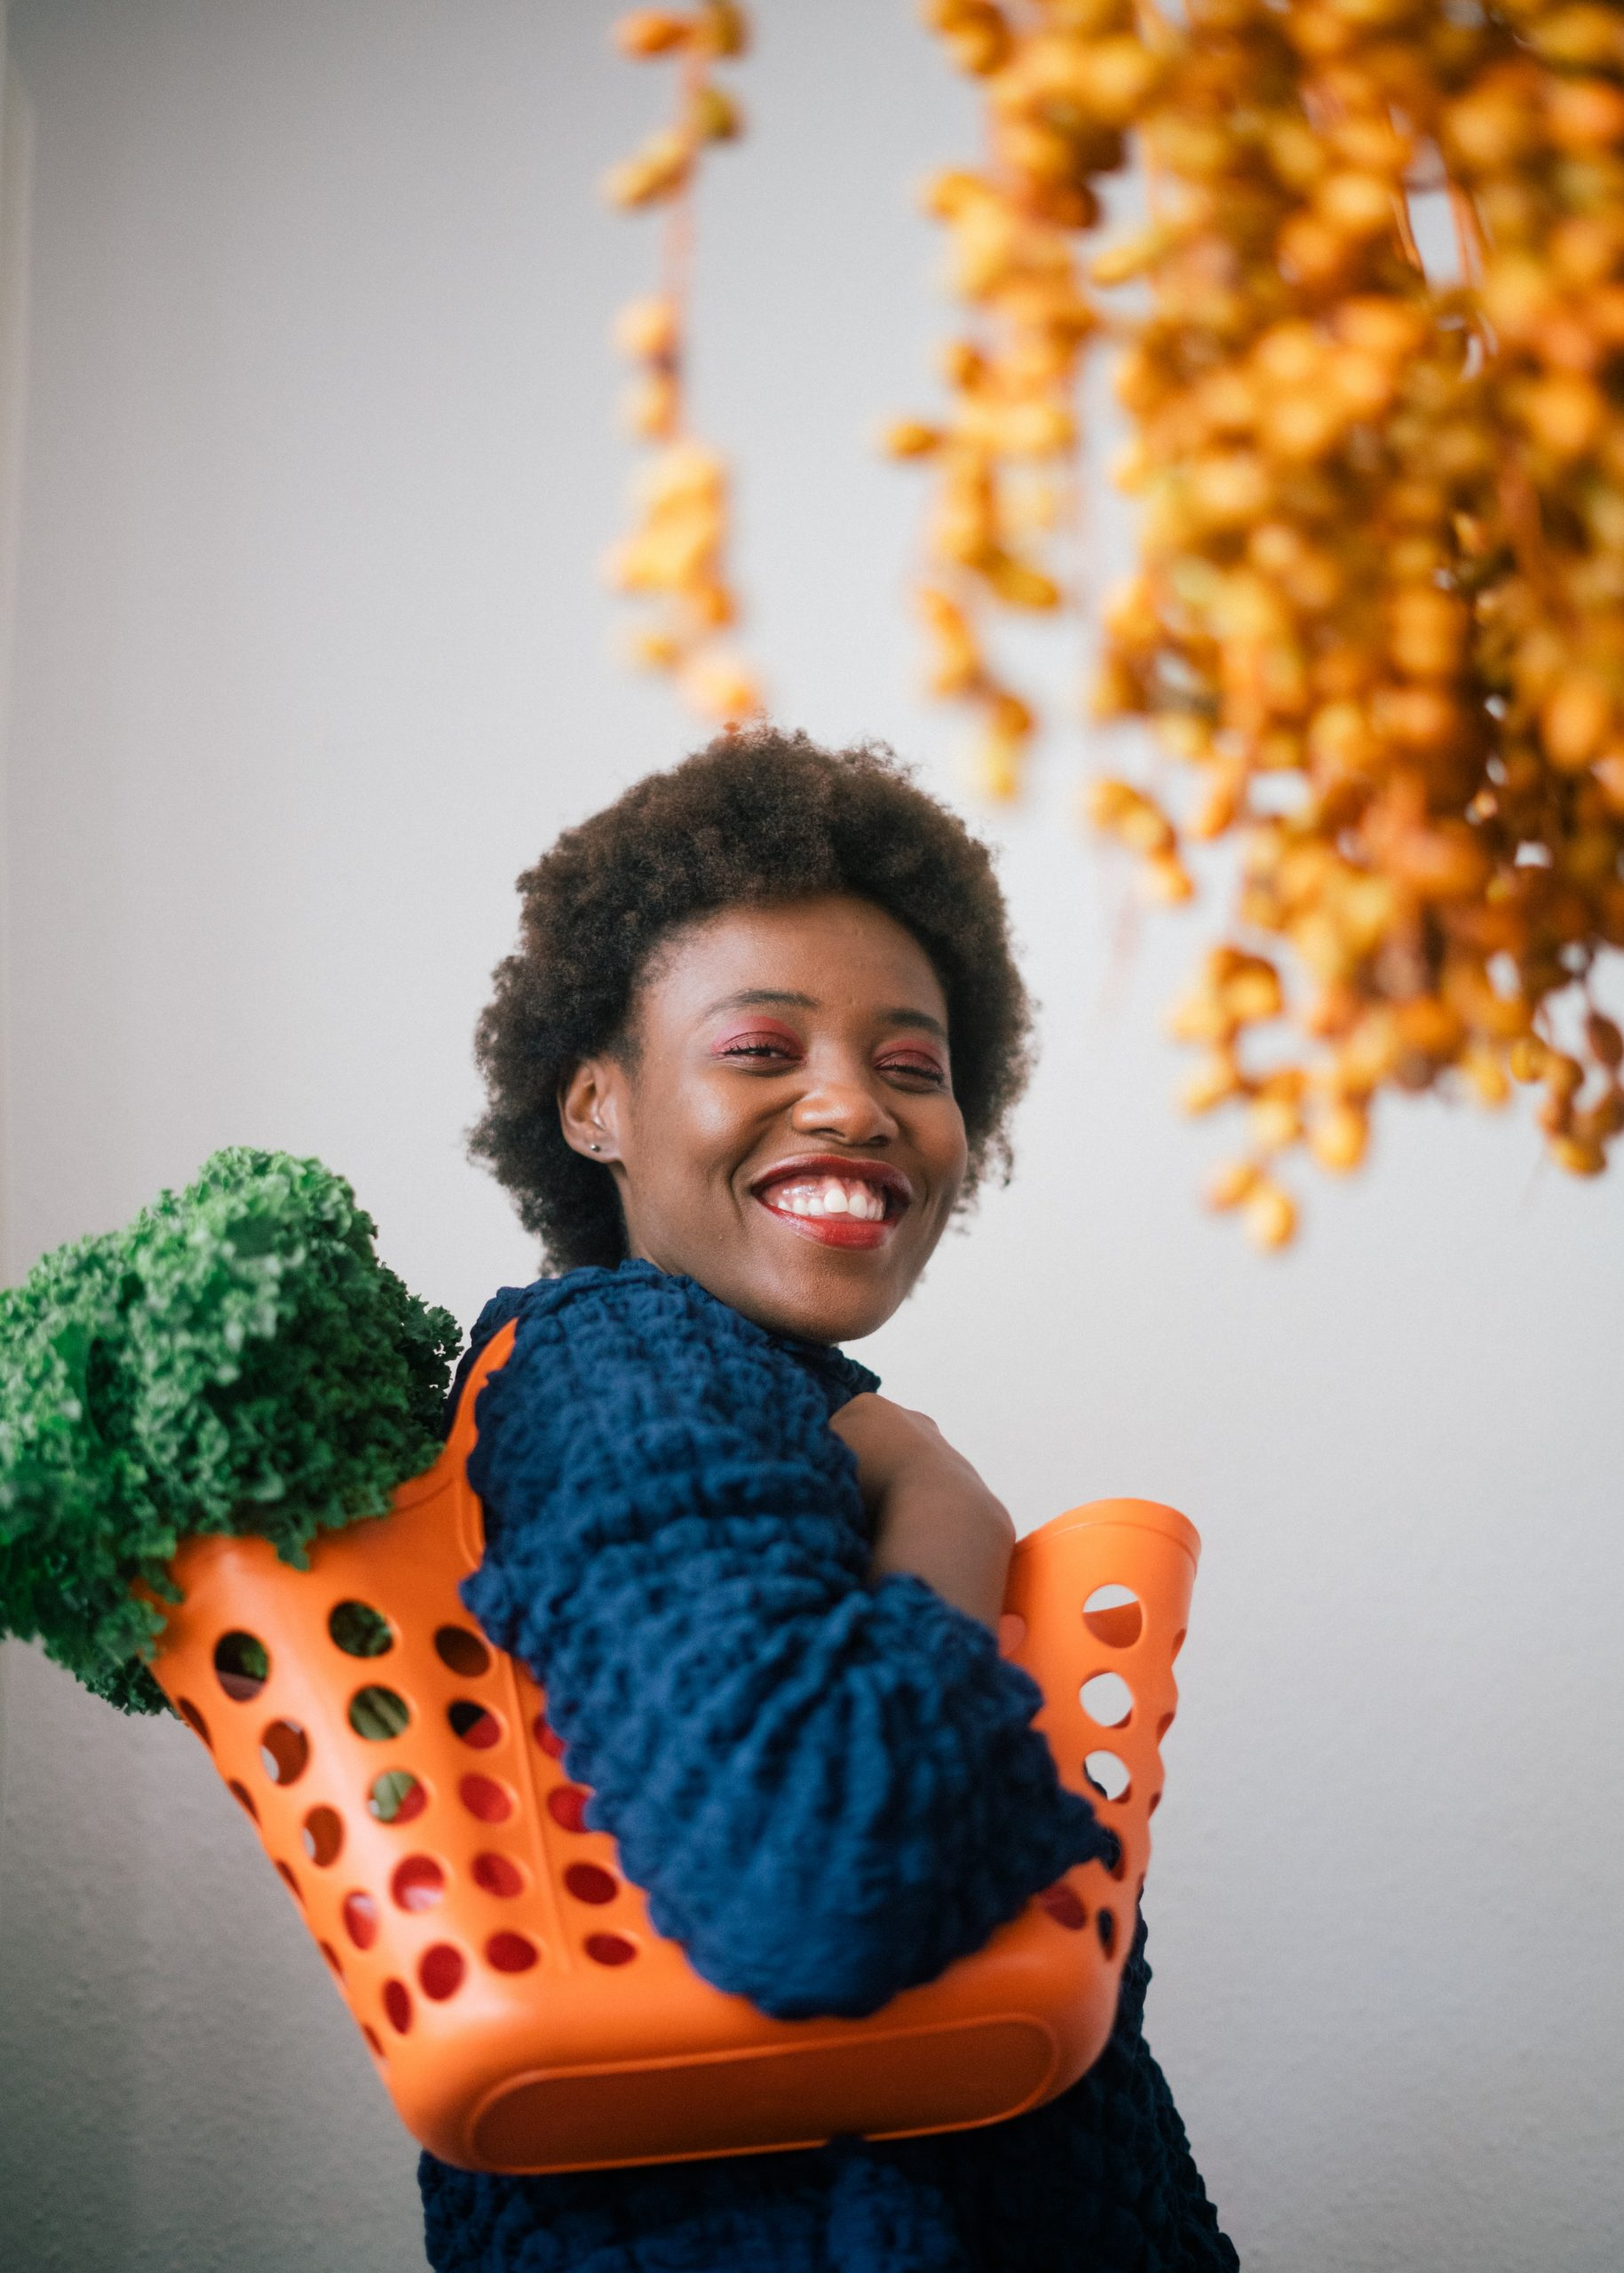 A young lady with groceries